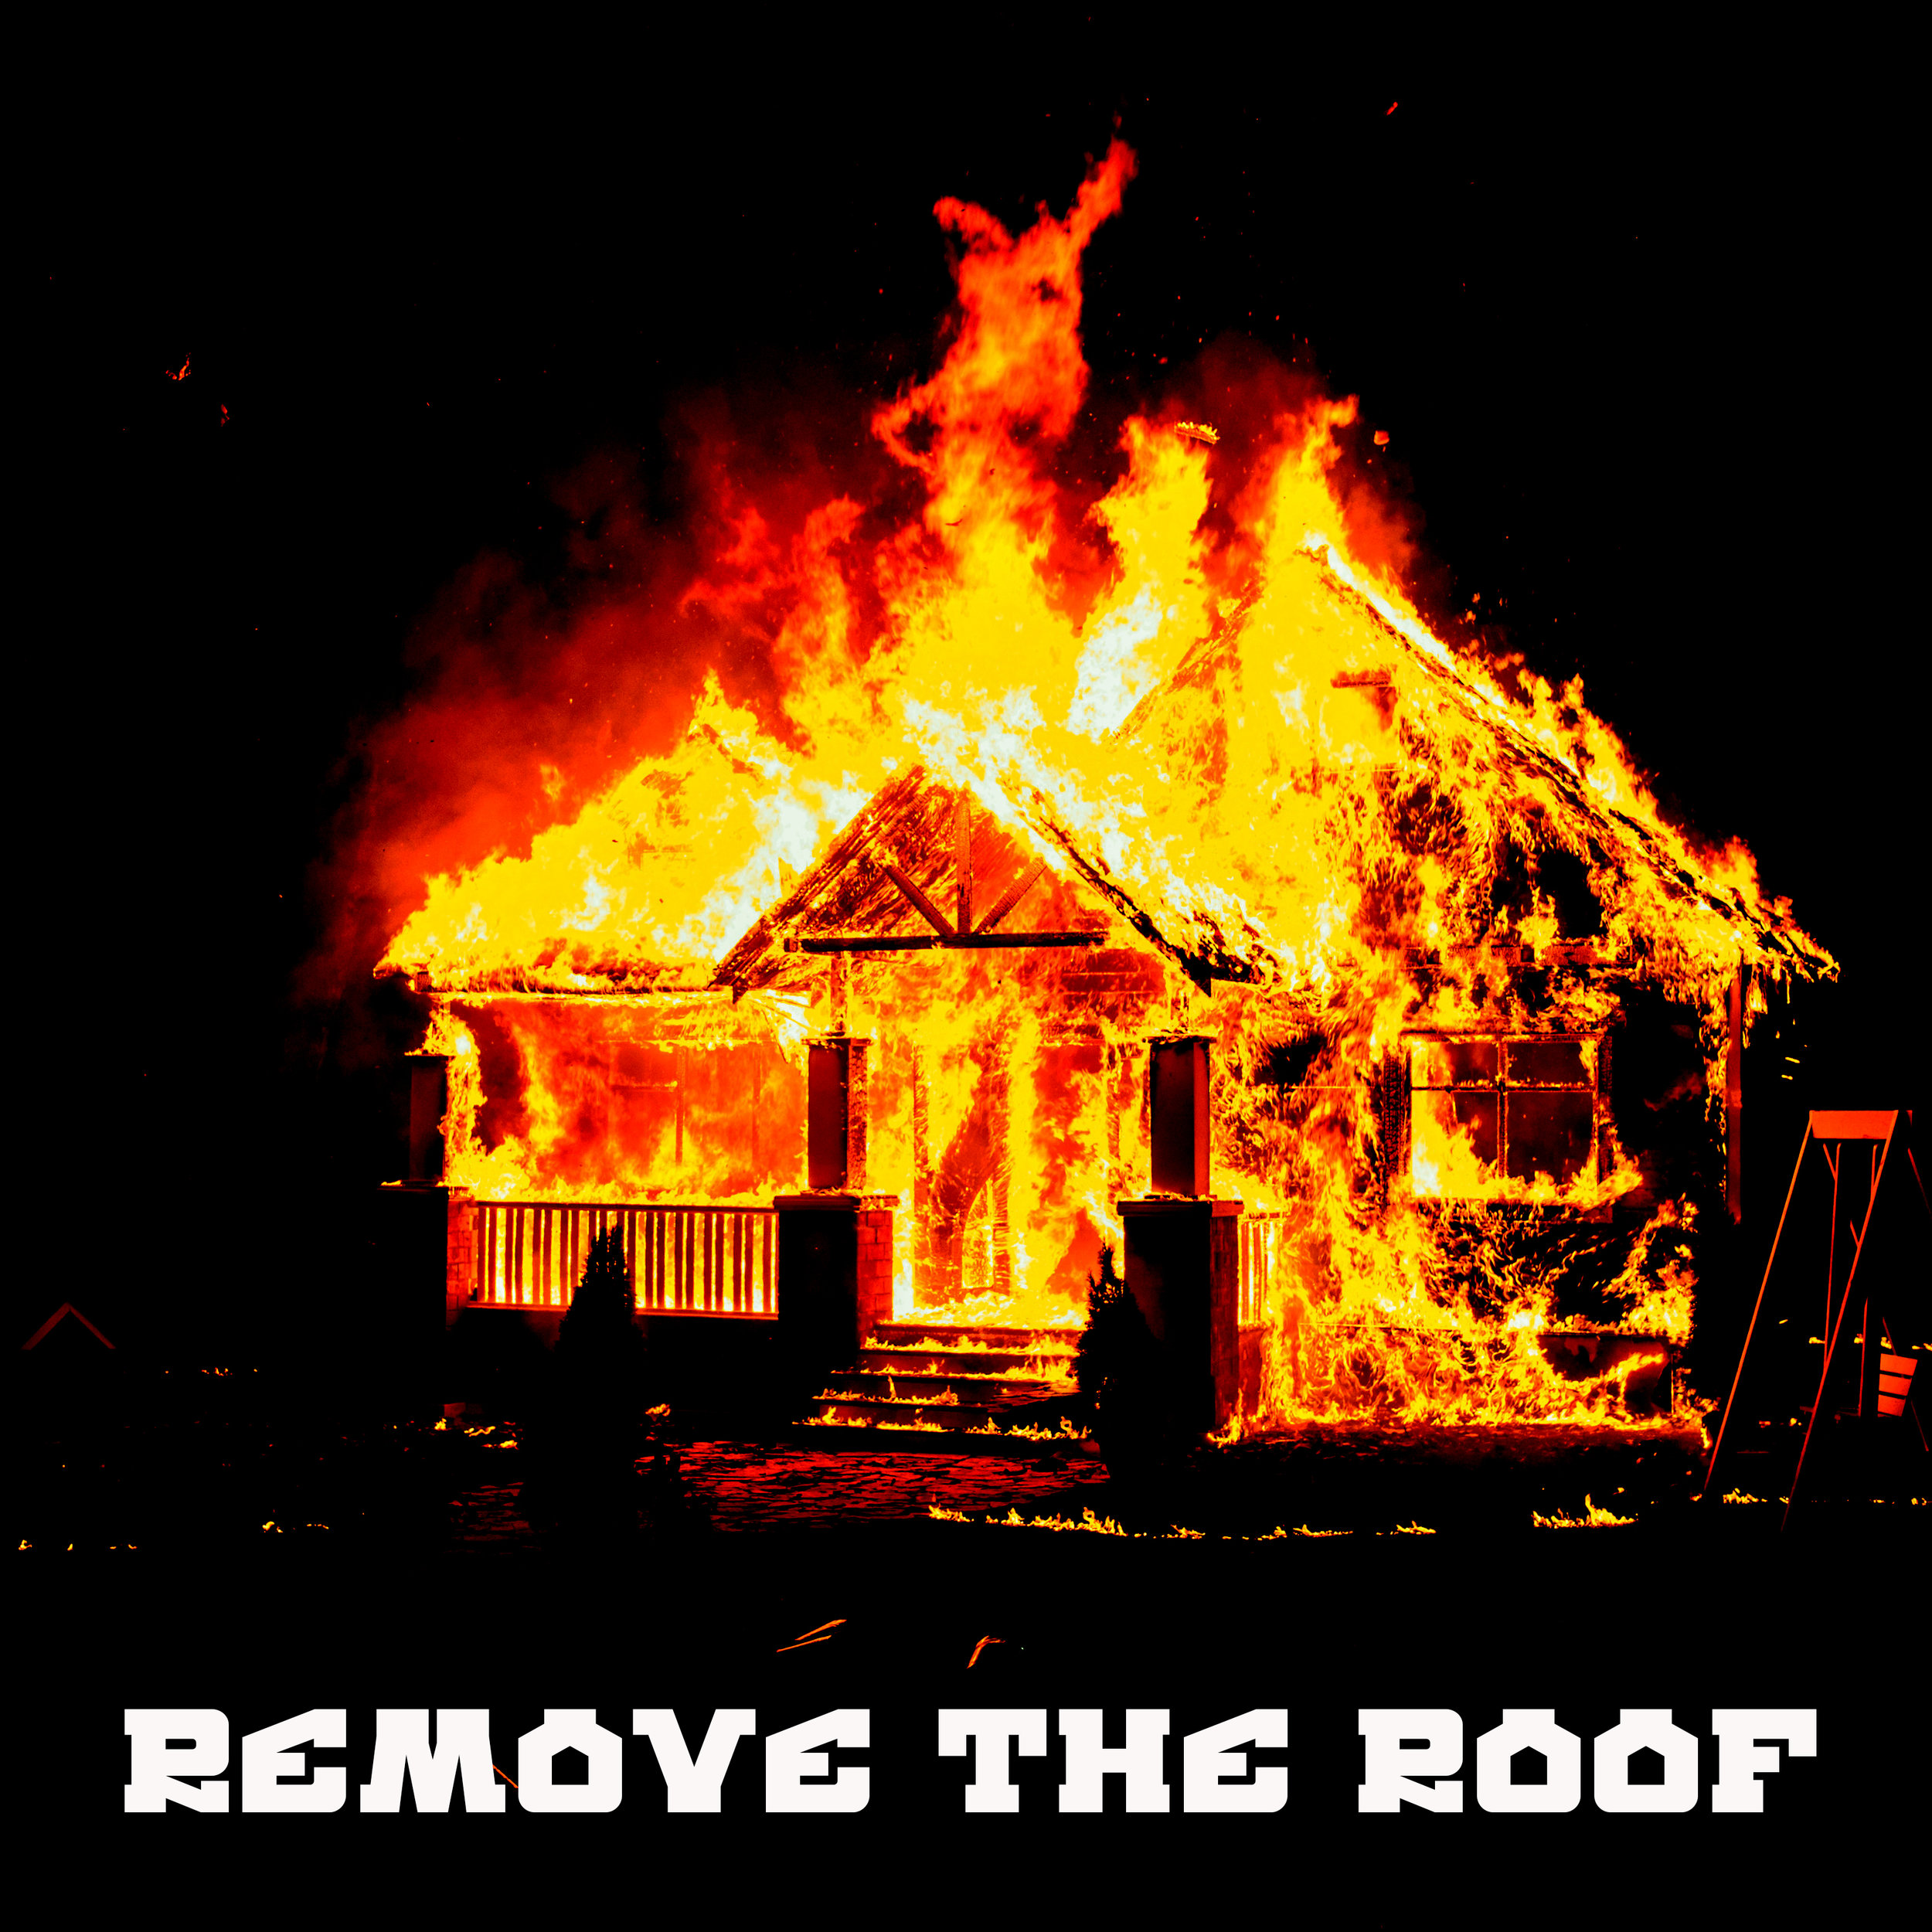 Remove the Roof - Title: Remove the RoofFeatures: Drums, Heavy Bass, dark Piano, StringsGenre: Trap, Hip-HopVibe: HypeBPM: 120